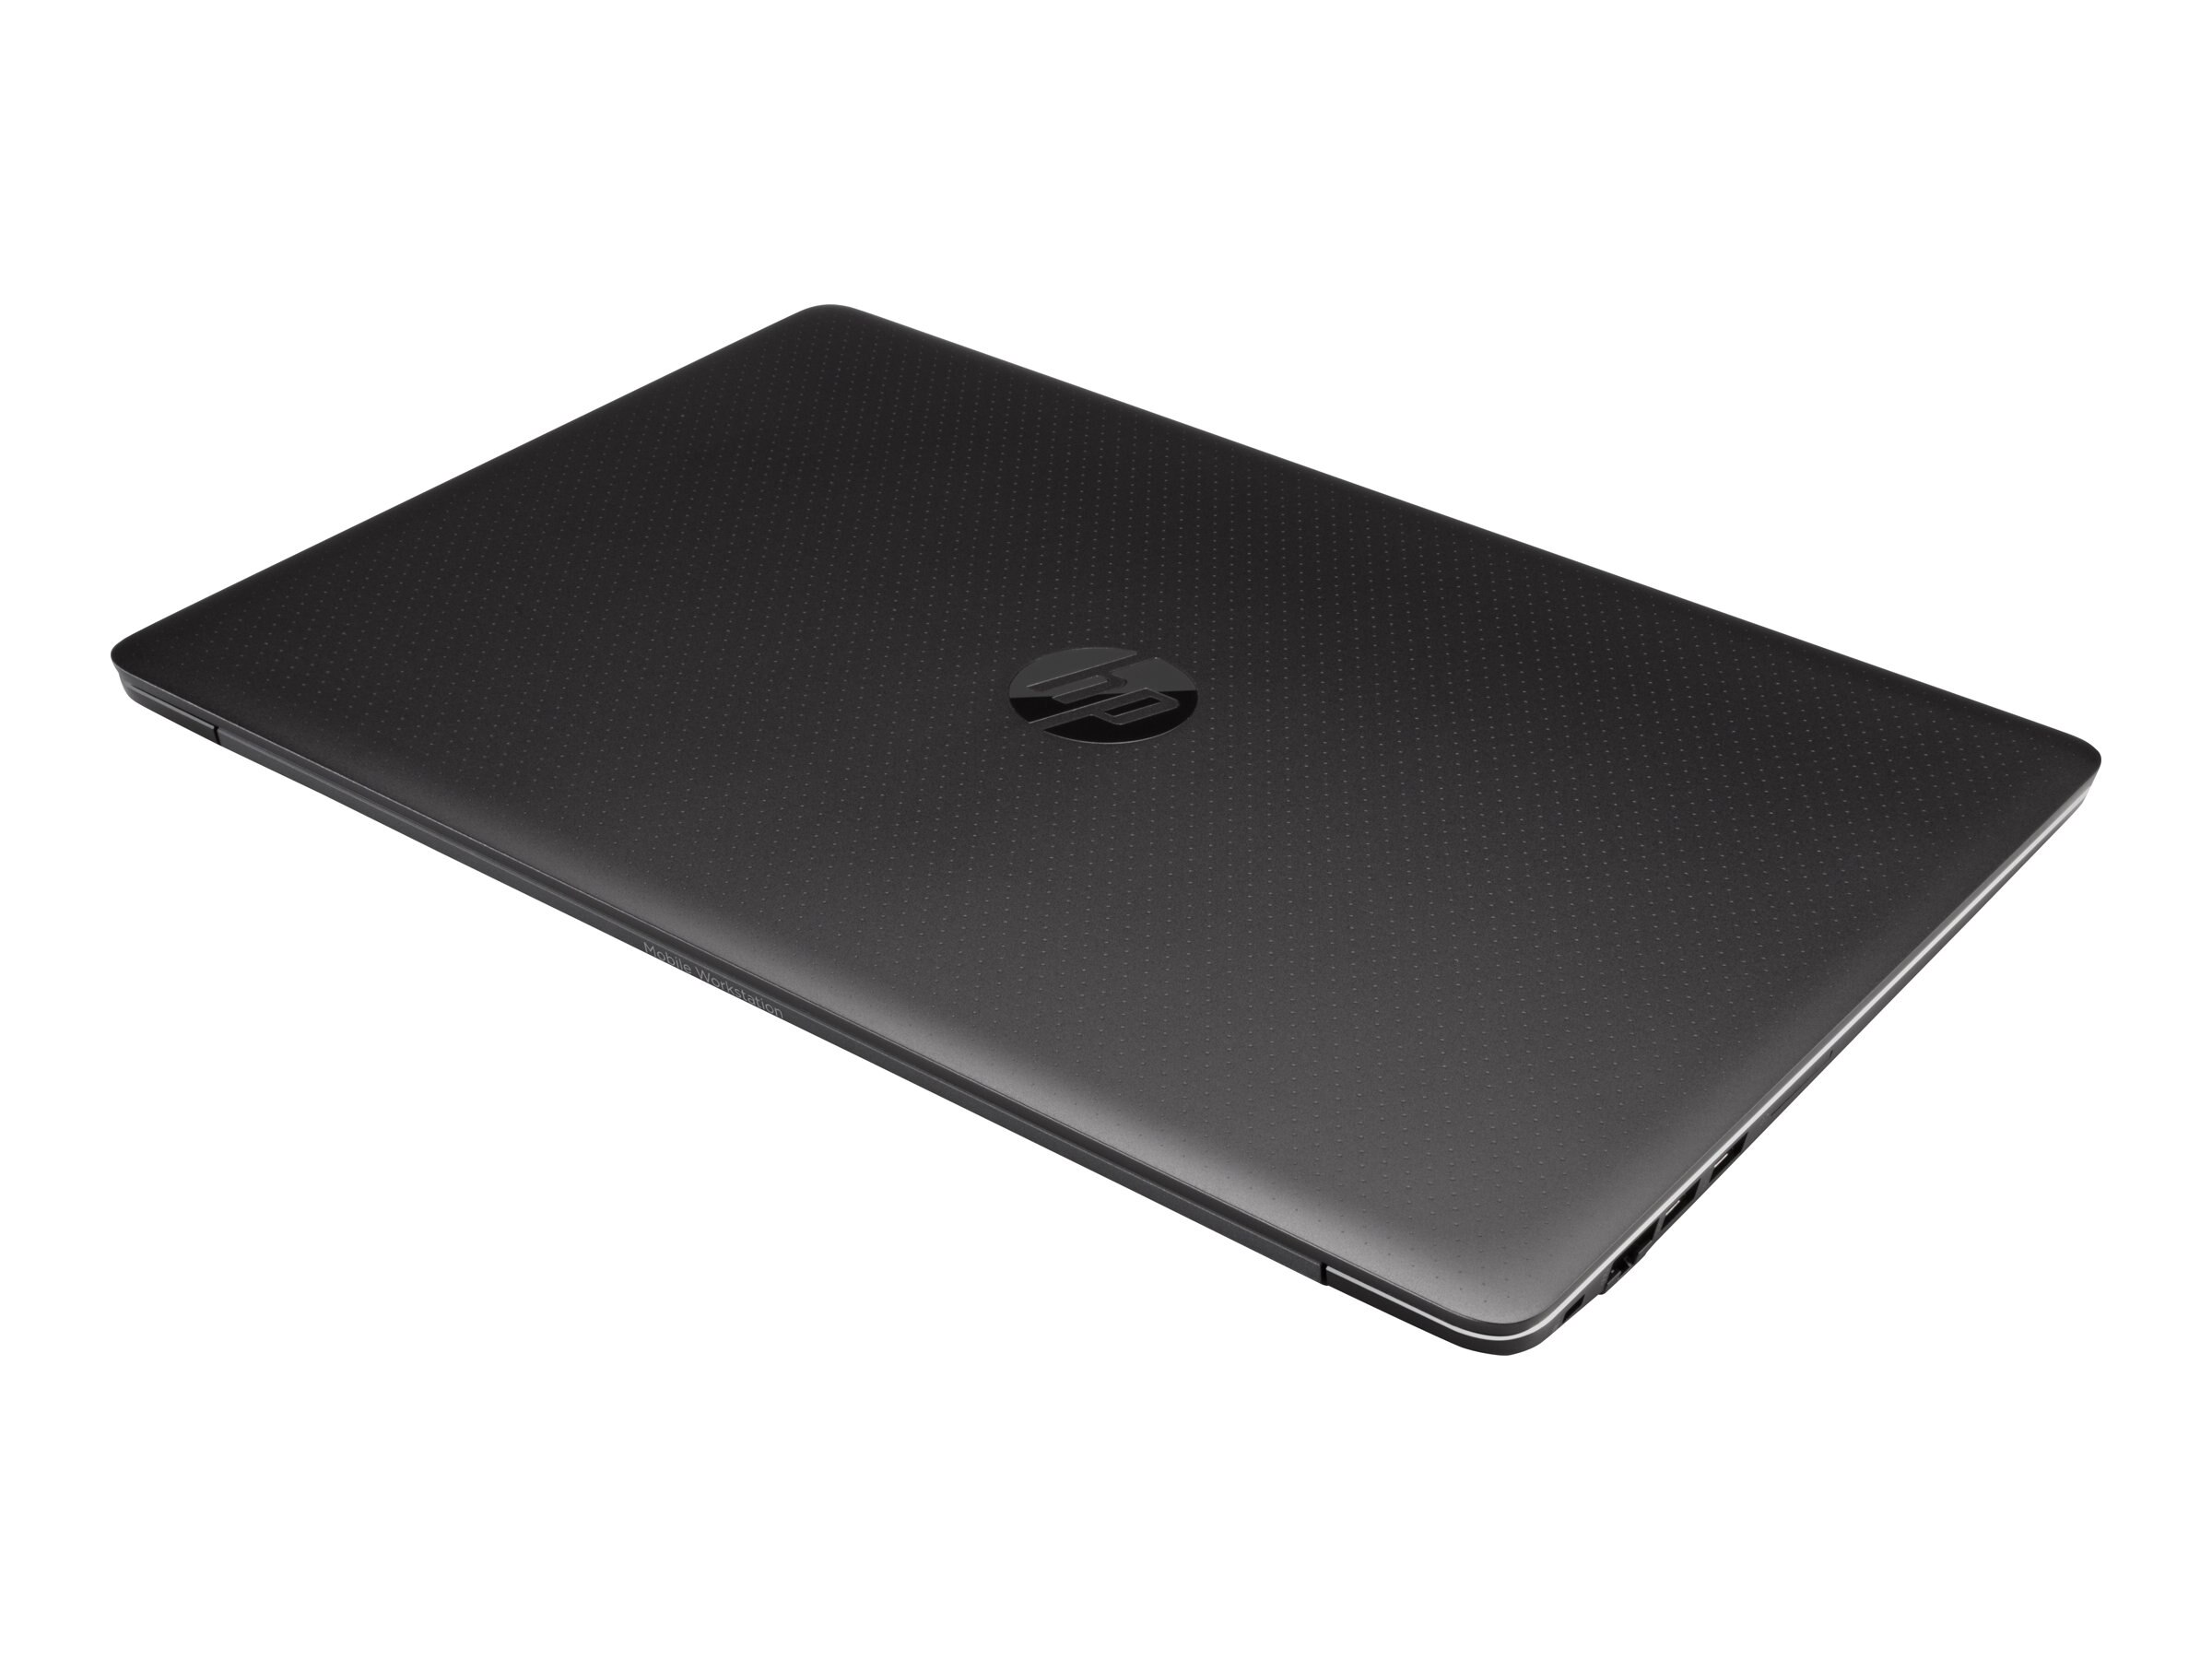 HP Smart Buy ZBook Studio G3 2.6GHz Core i7 15.6in display